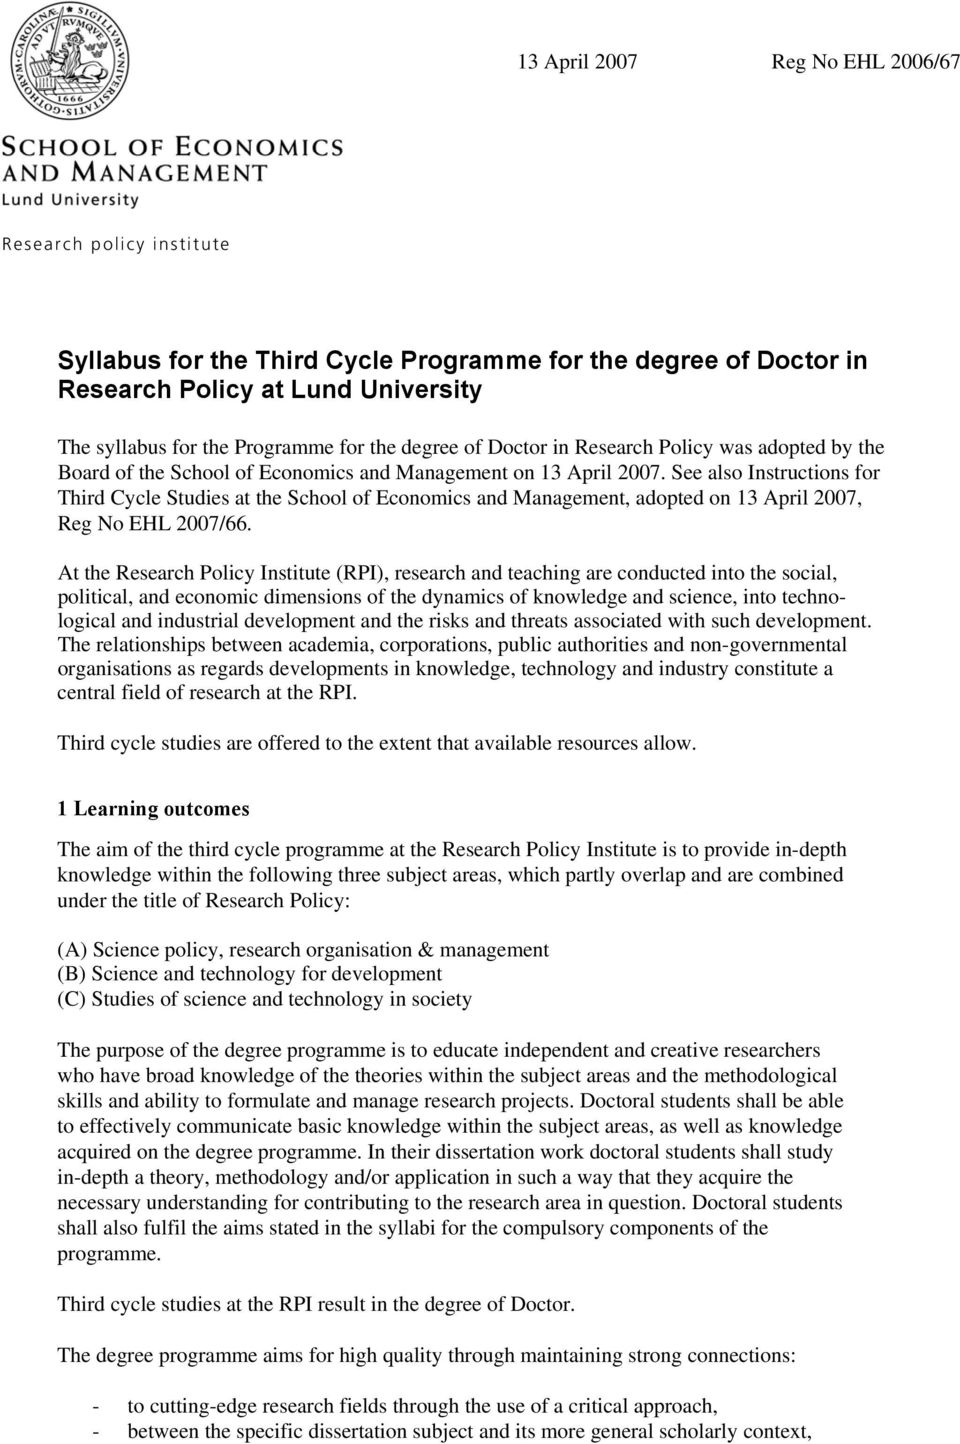 See also Instructions for Third Cycle Studies at the School of Economics and Management, adopted on 13 April 2007, Reg No EHL 2007/66.